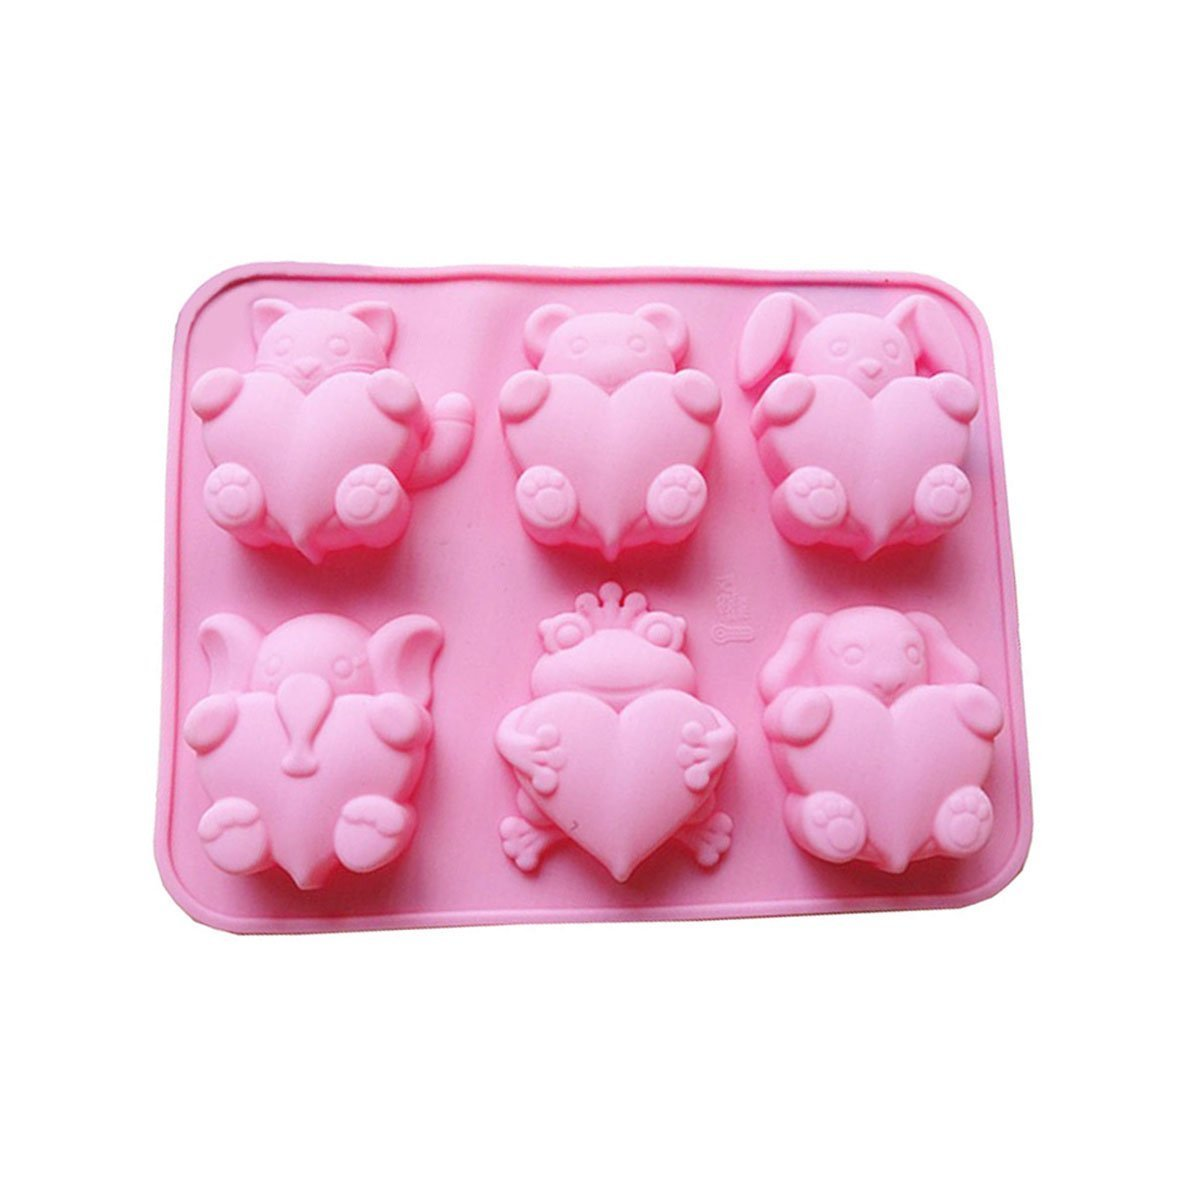 iHomeSpace 6-cavity Cute different face Piggy Shaped Silicone Ice Candy Chocolate Jelly Pastry Making Molds Cake Baking Mold(2 Sets) Cherion COMIN18JU065160